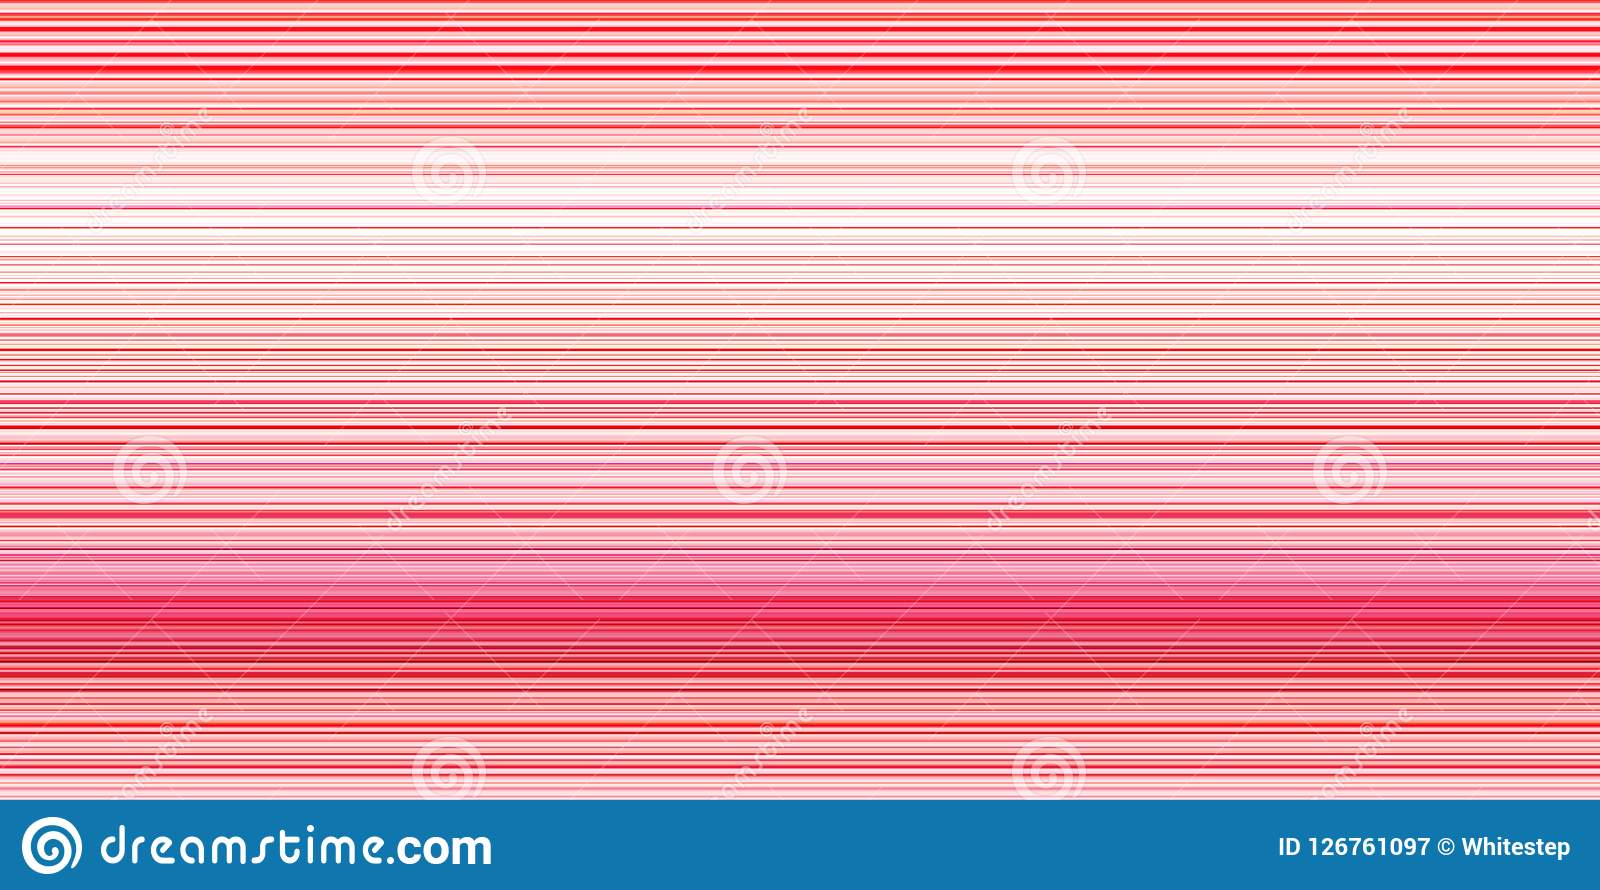 Warm Light Colors in Digital Strips by One Pixel